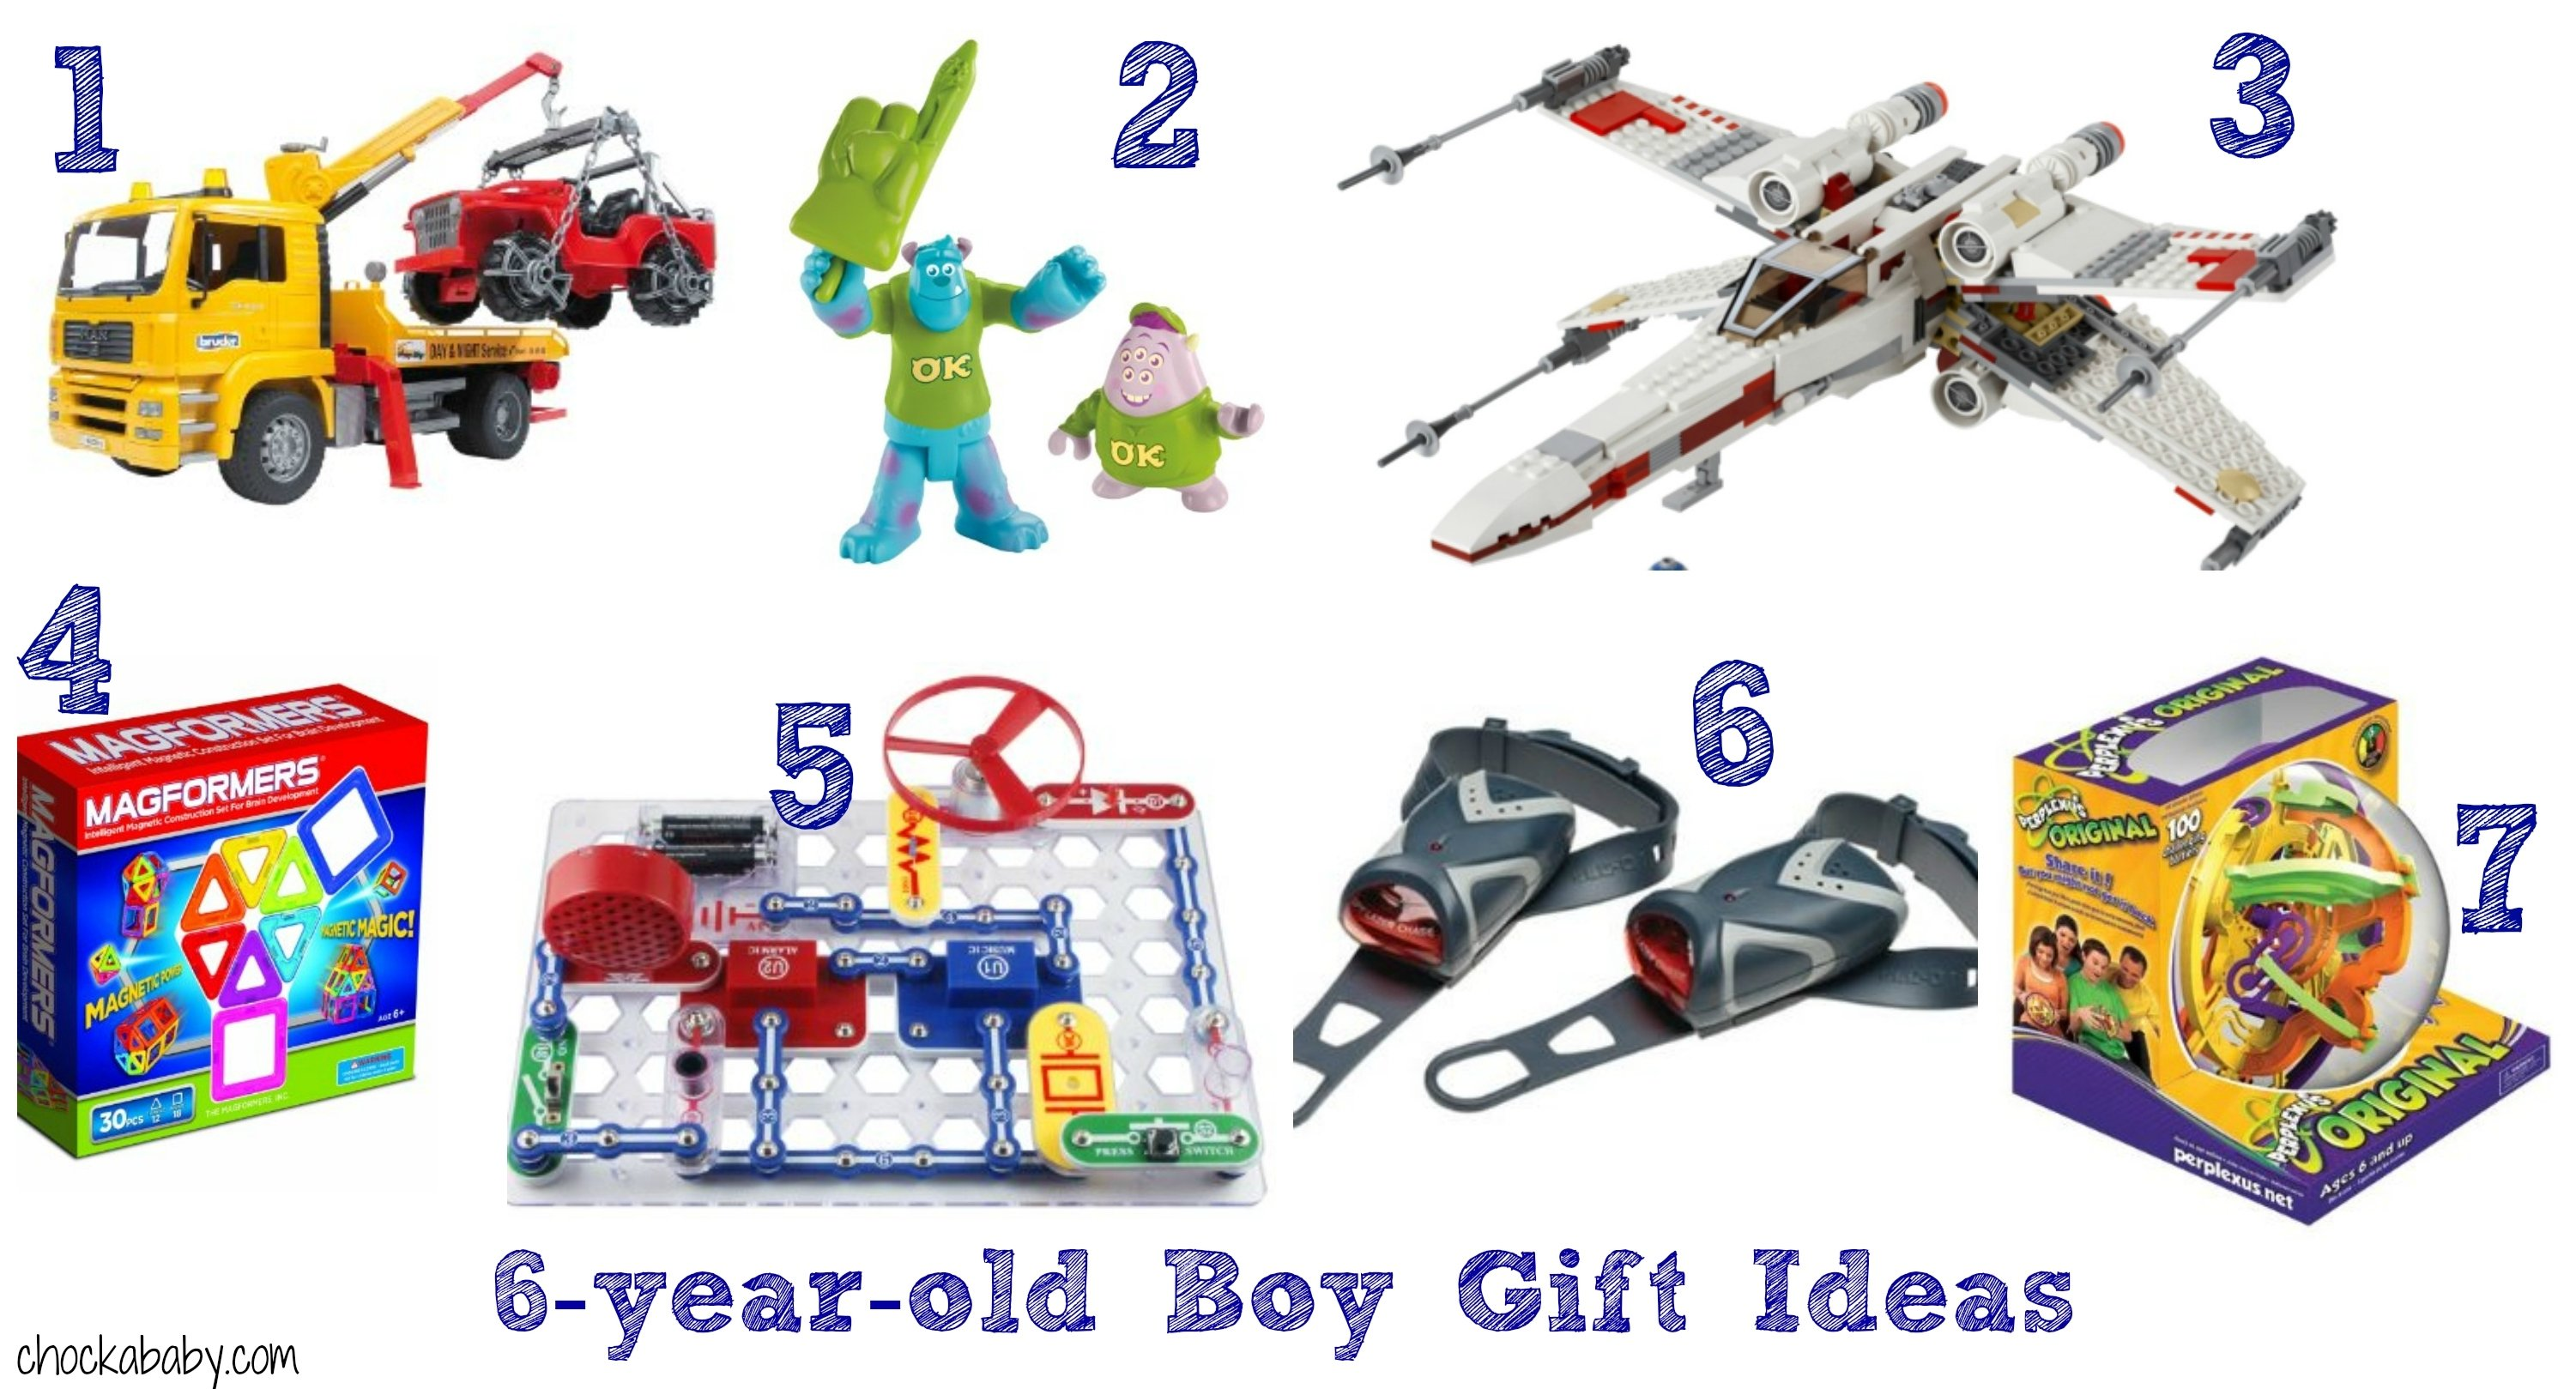 10 Awesome 3 Year Old Boy Birthday Gift Ideas Amazing Gifts For Boys Images Children